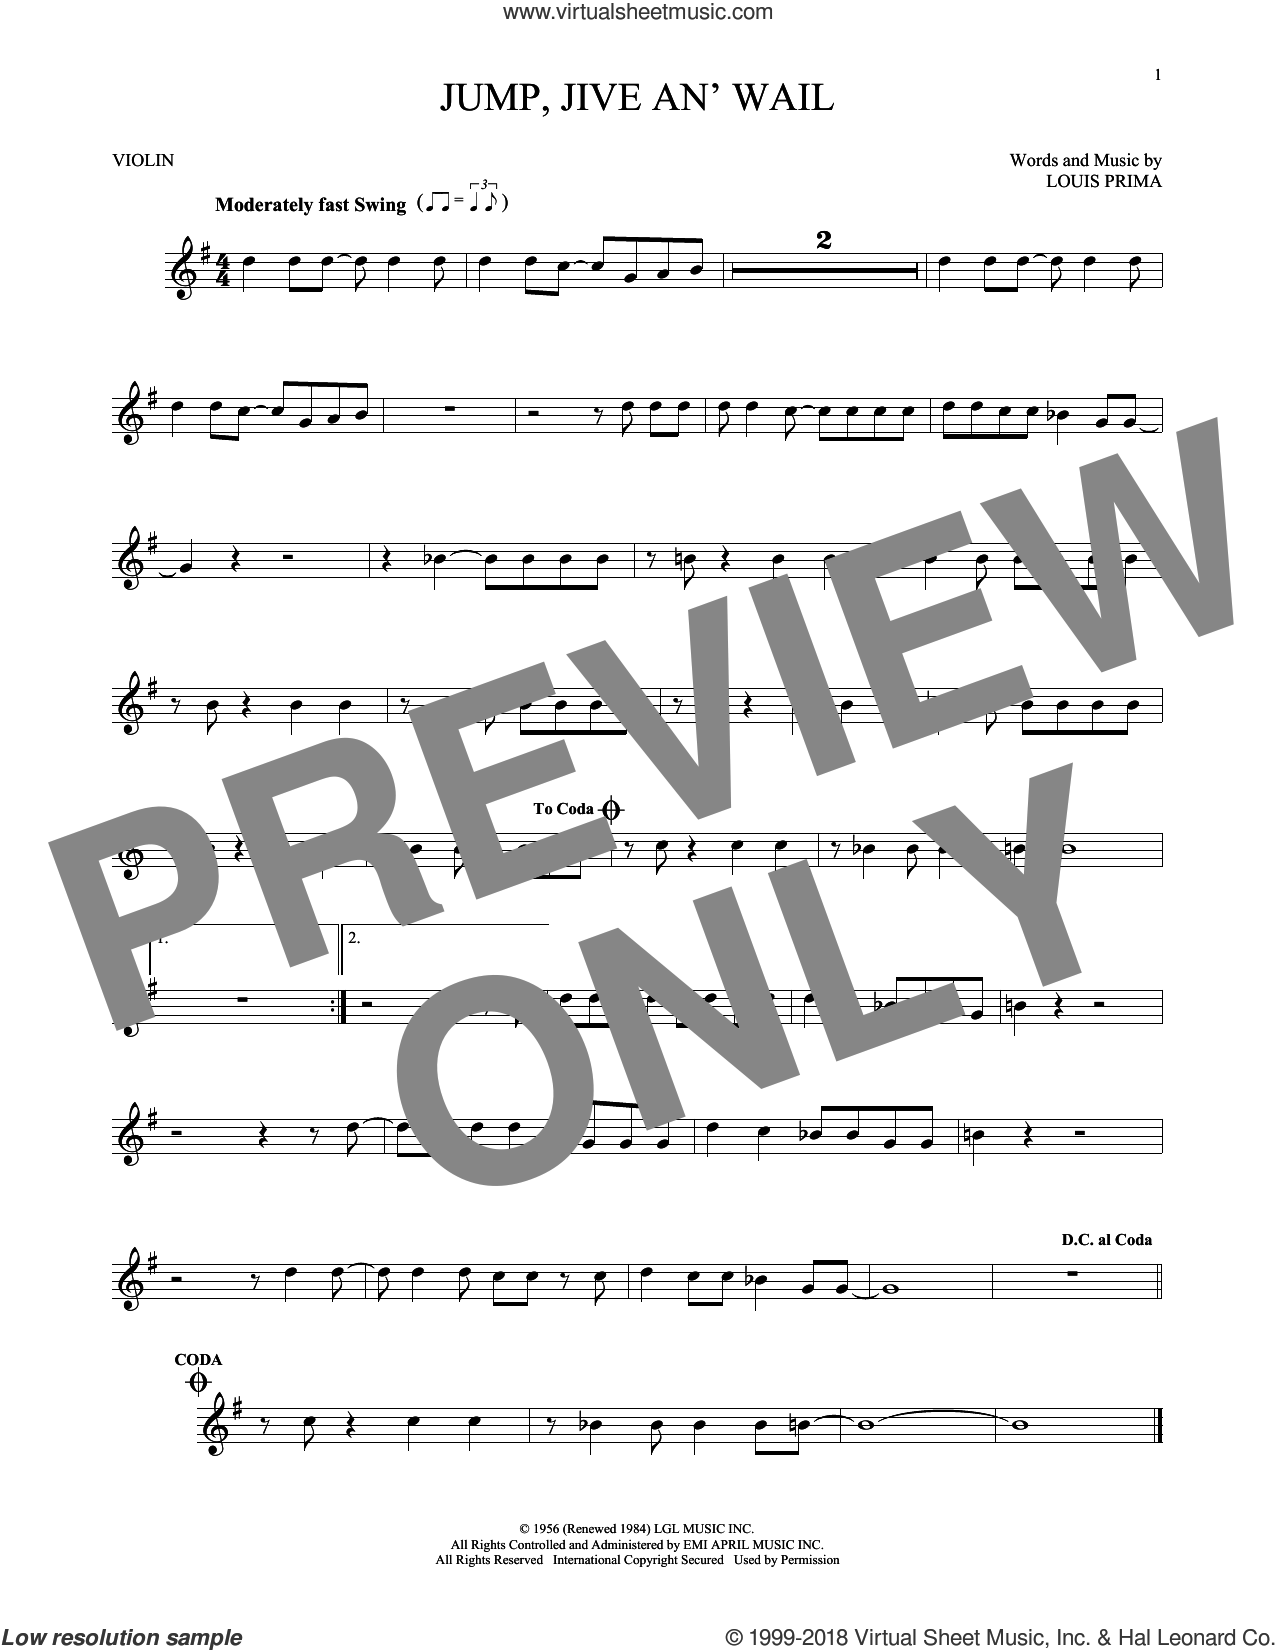 Jump, Jive An' Wail sheet music for violin solo by Louis Prima and Brian Setzer. Score Image Preview.